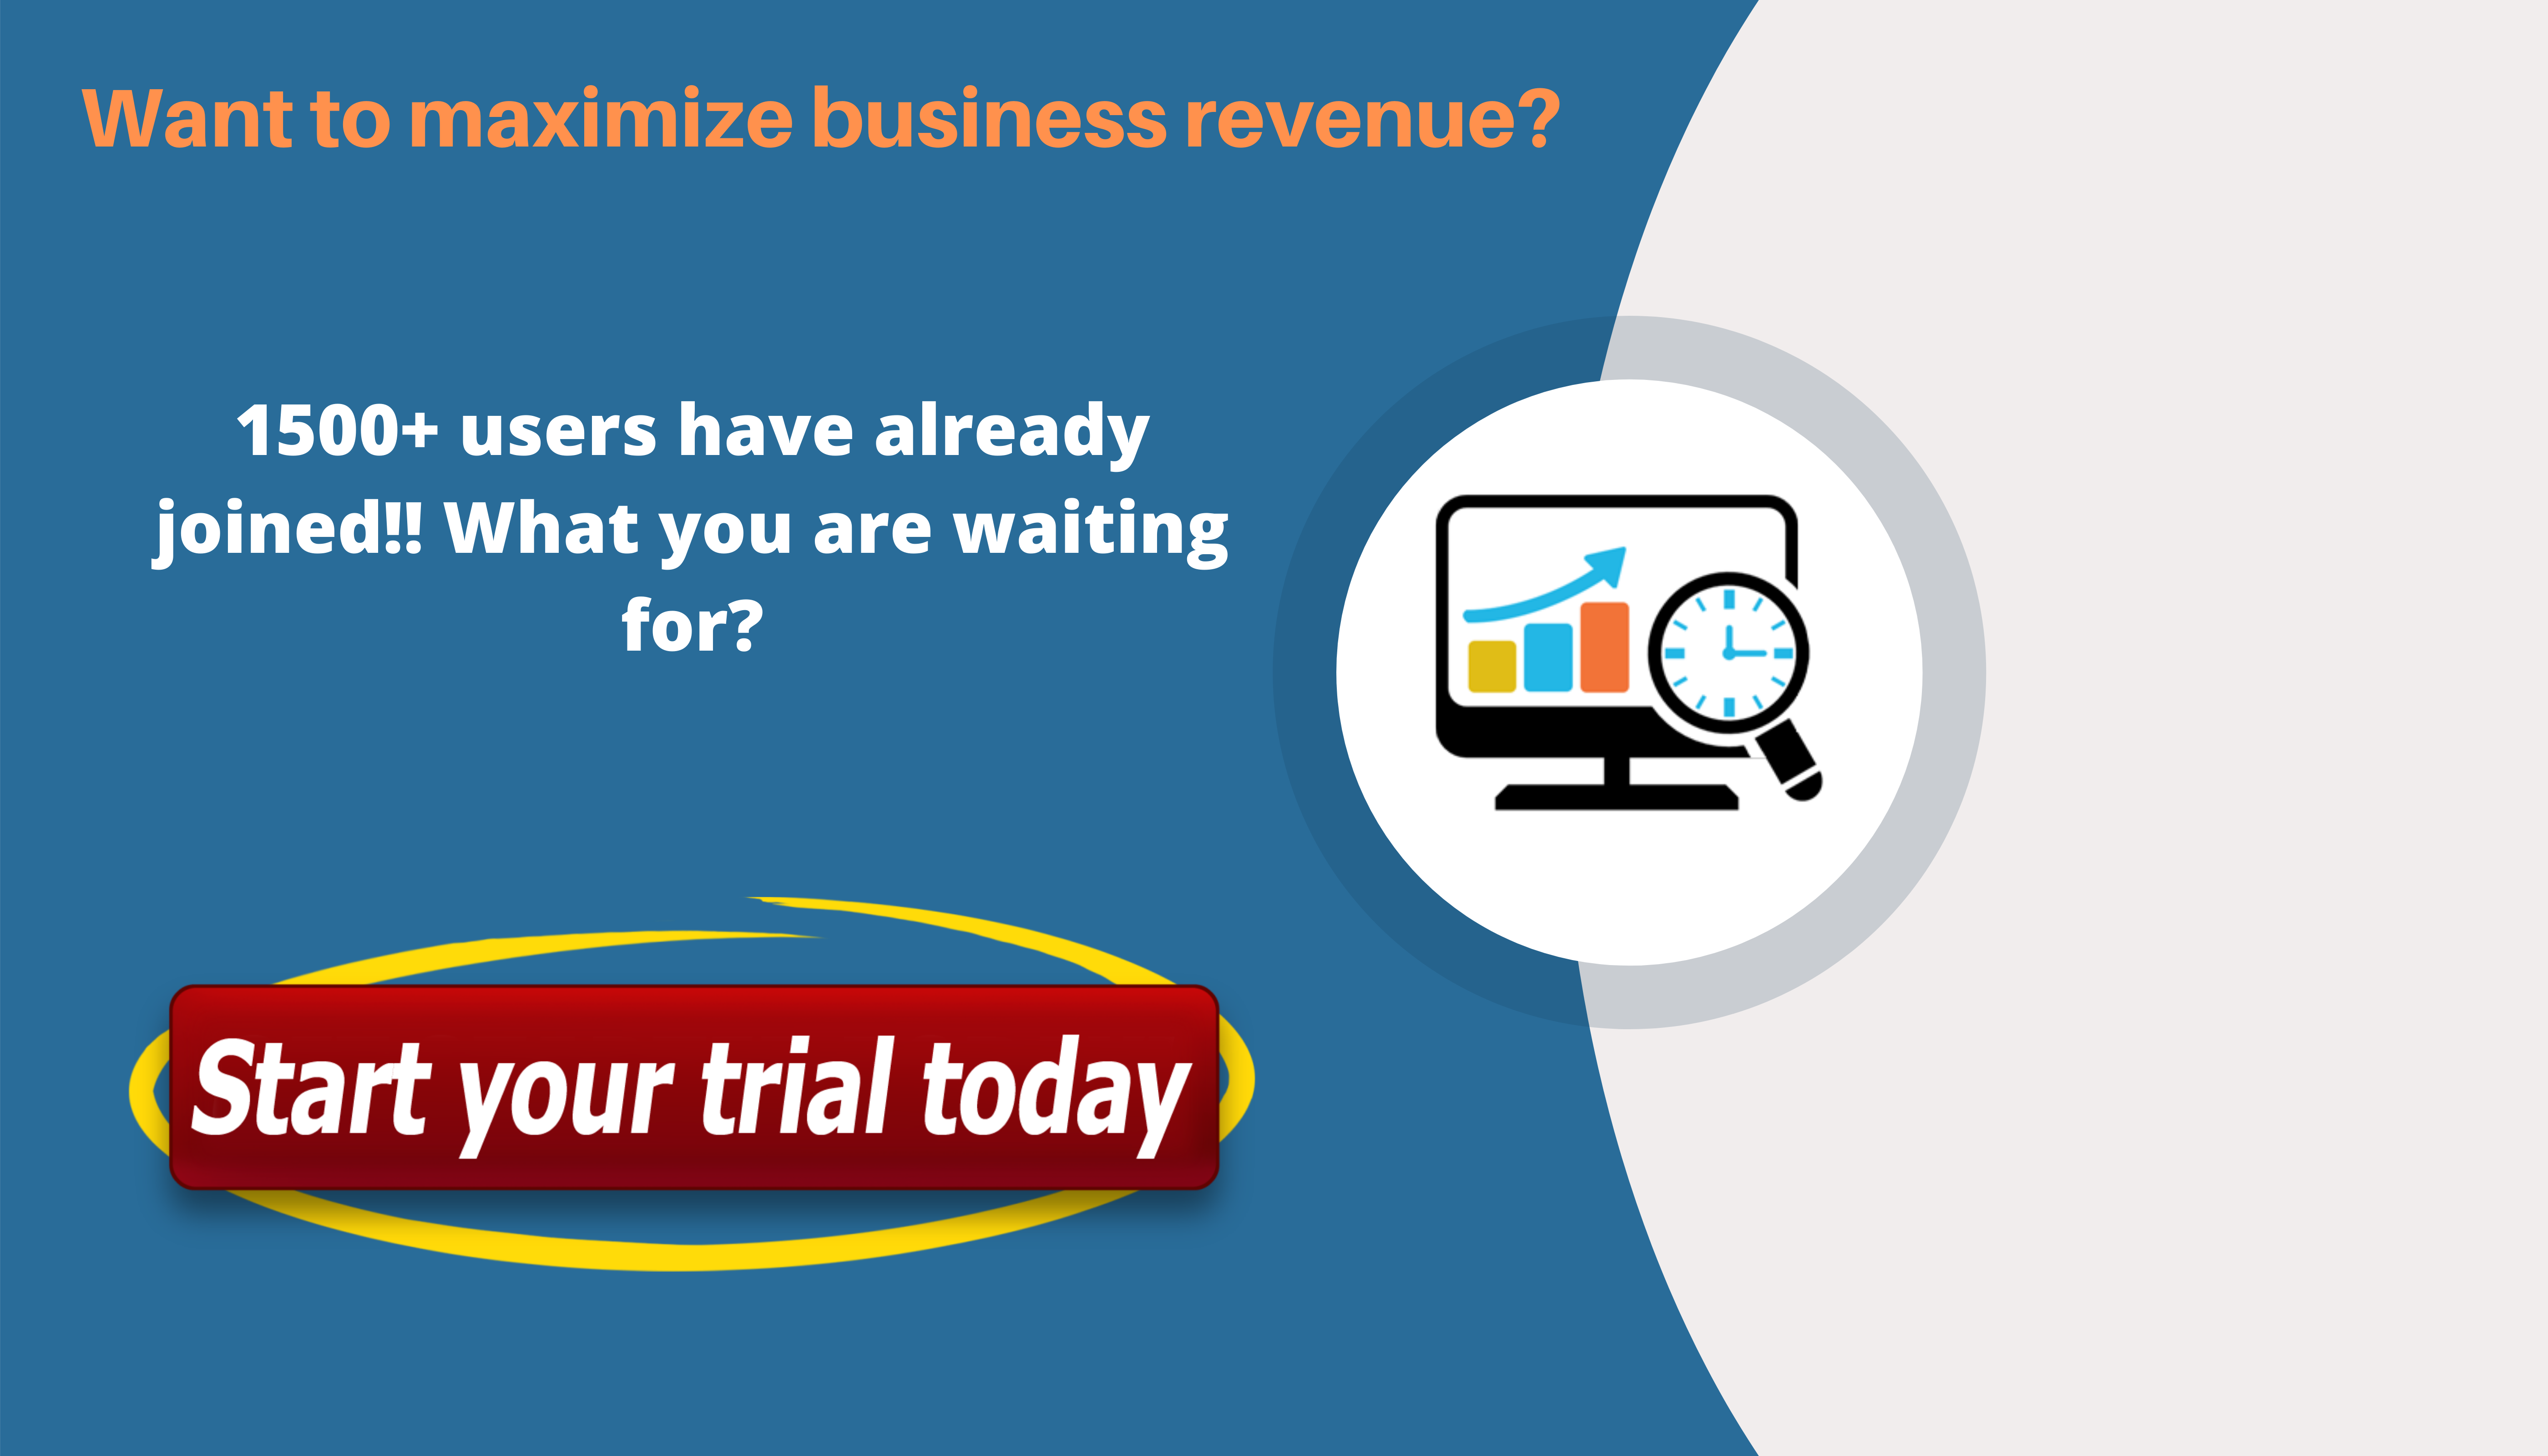 Want to maximize business revenue